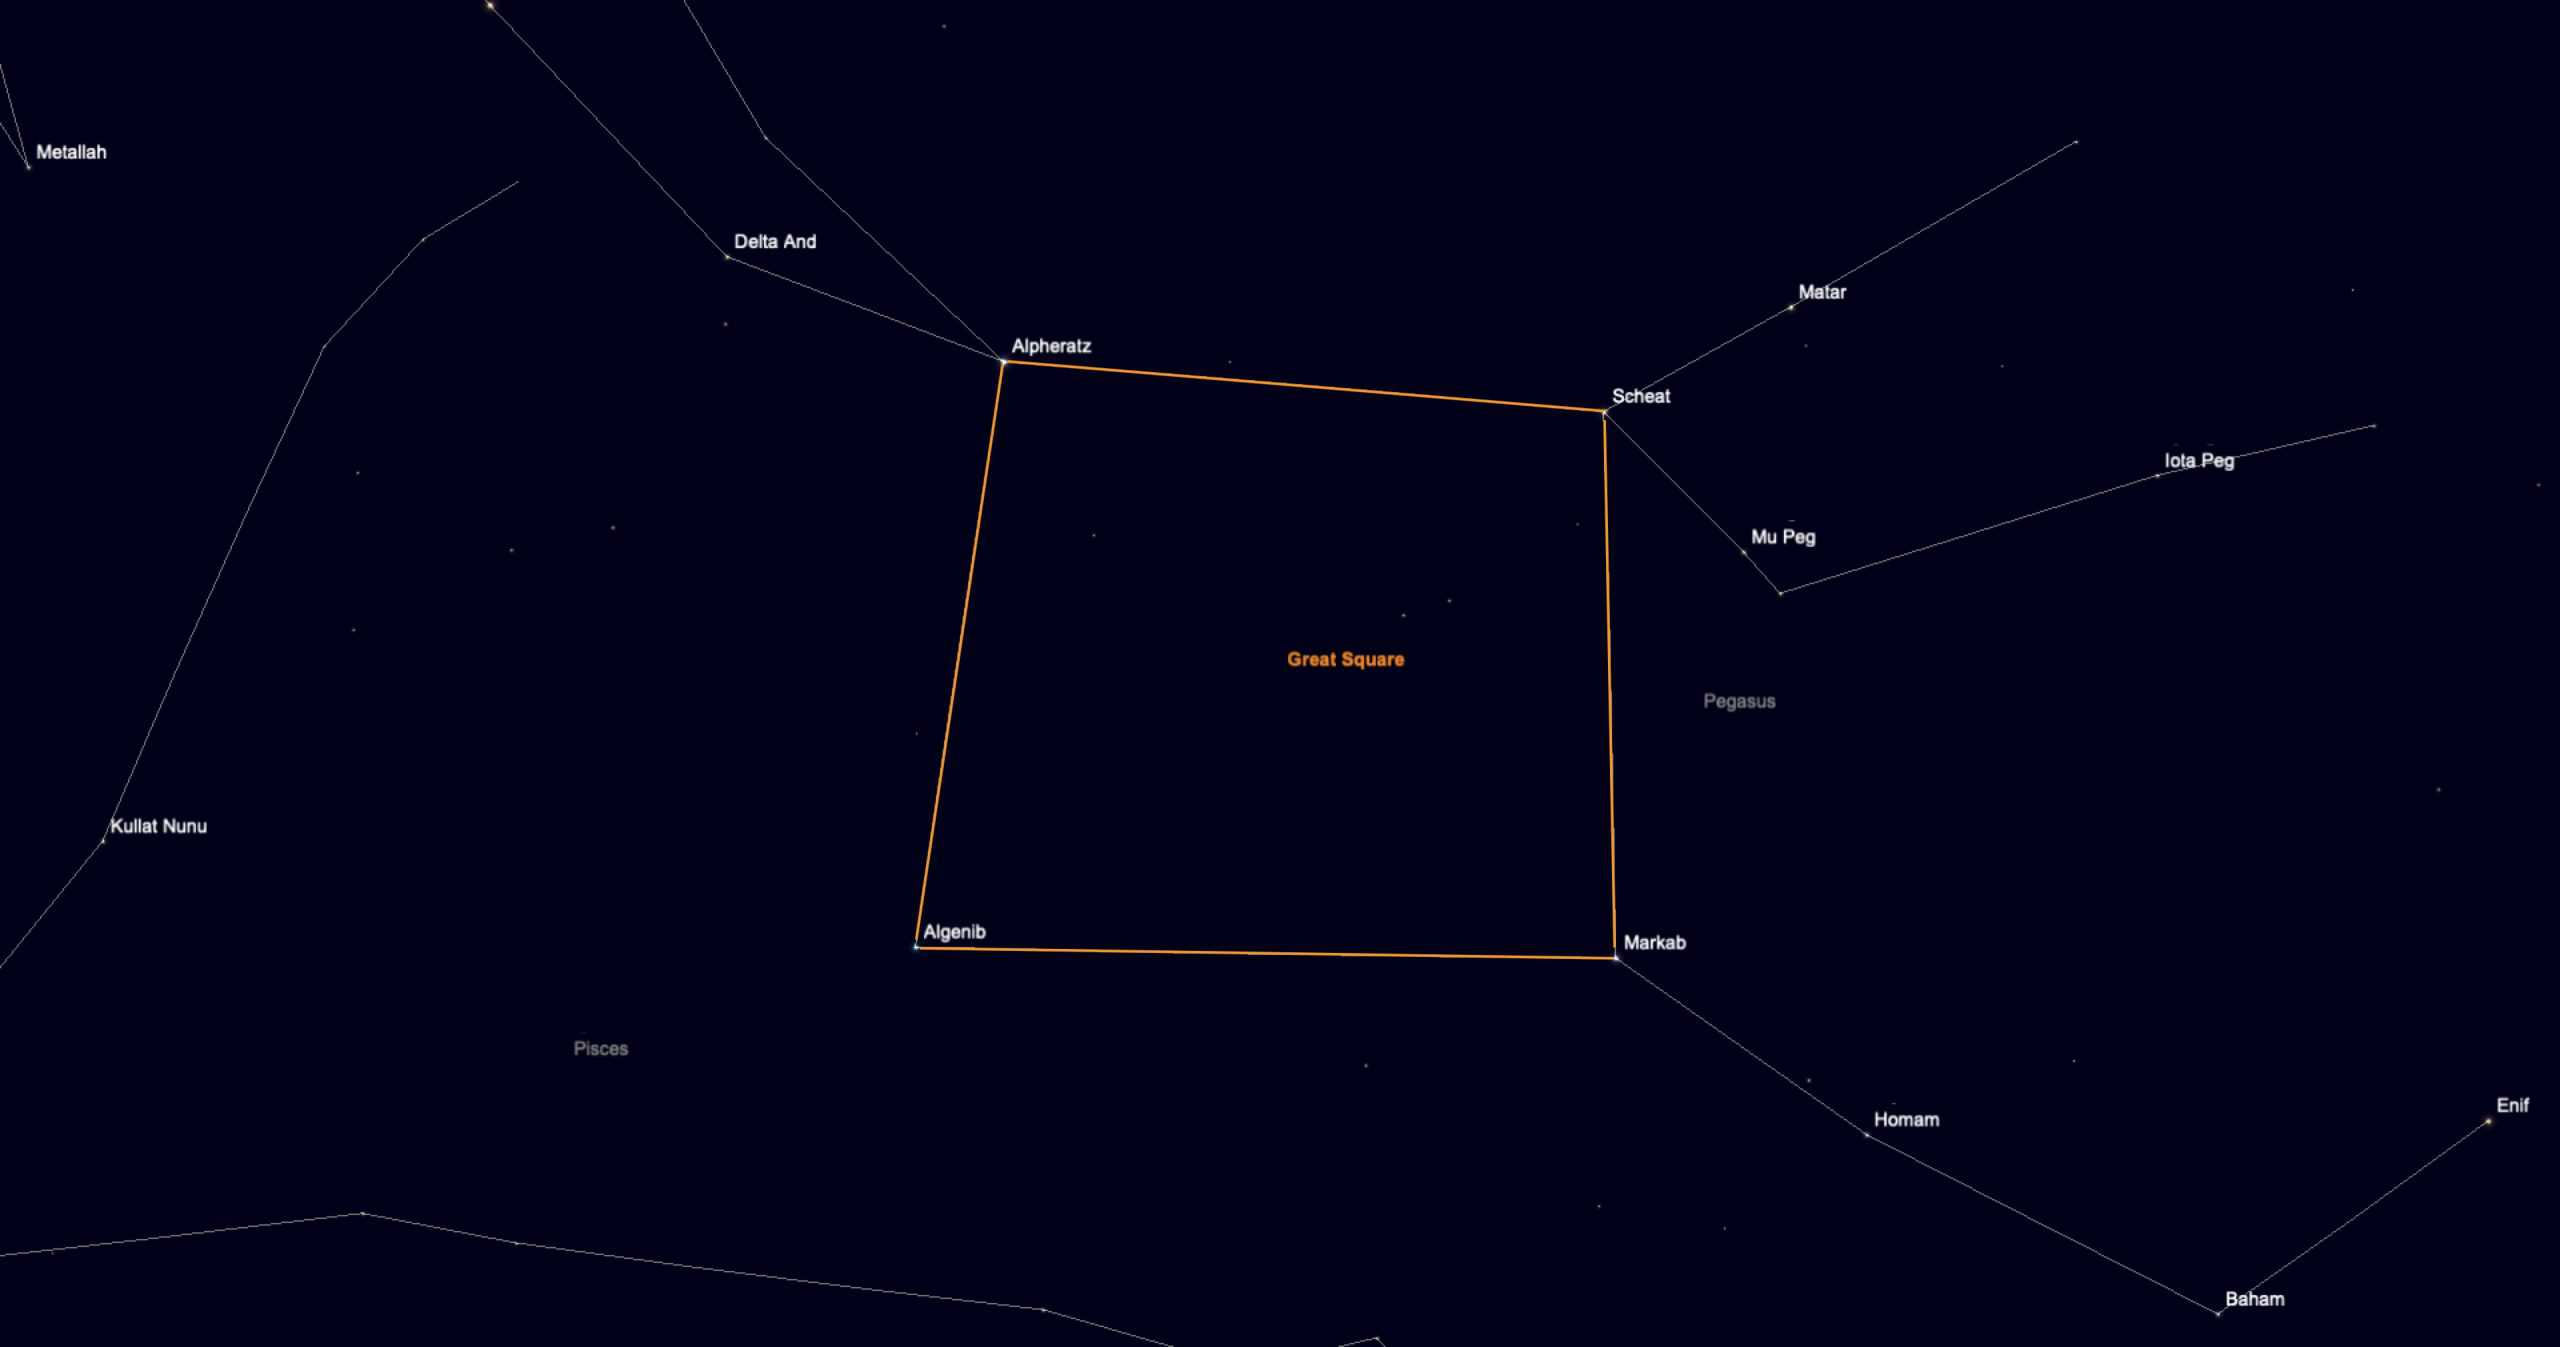 The Great Square of Pegasus asterism